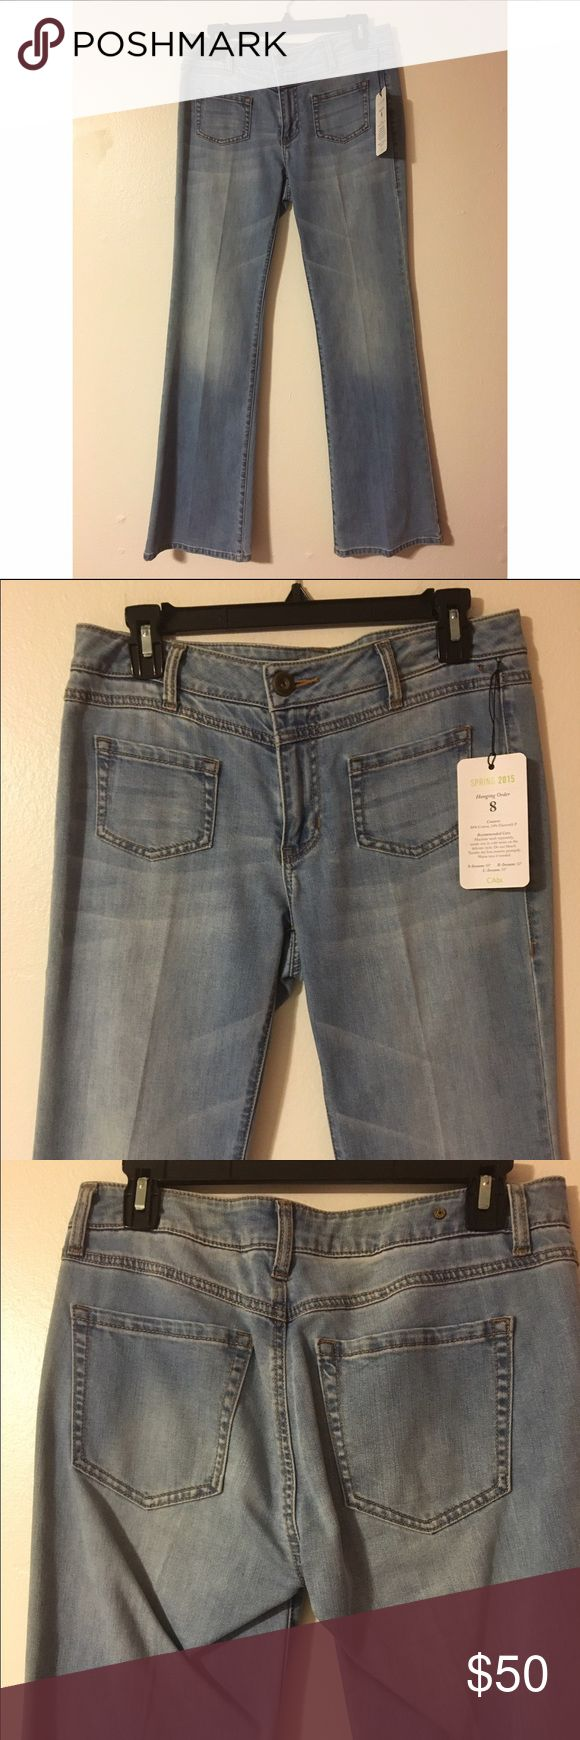 NWT CAbi Malibu Flare Light Wash Jeans Size 6 R NWT CAbi Malibu Flare Light Wash Jeans Size 6 R Retail price: $108 Size: 6 regular 86% cotton 14% elasterell-P Waist: 16 inches Rise: 8.5 inches Inseam: 32 Inches Spring 2015 collection CAbi Jeans Flare & Wide Leg